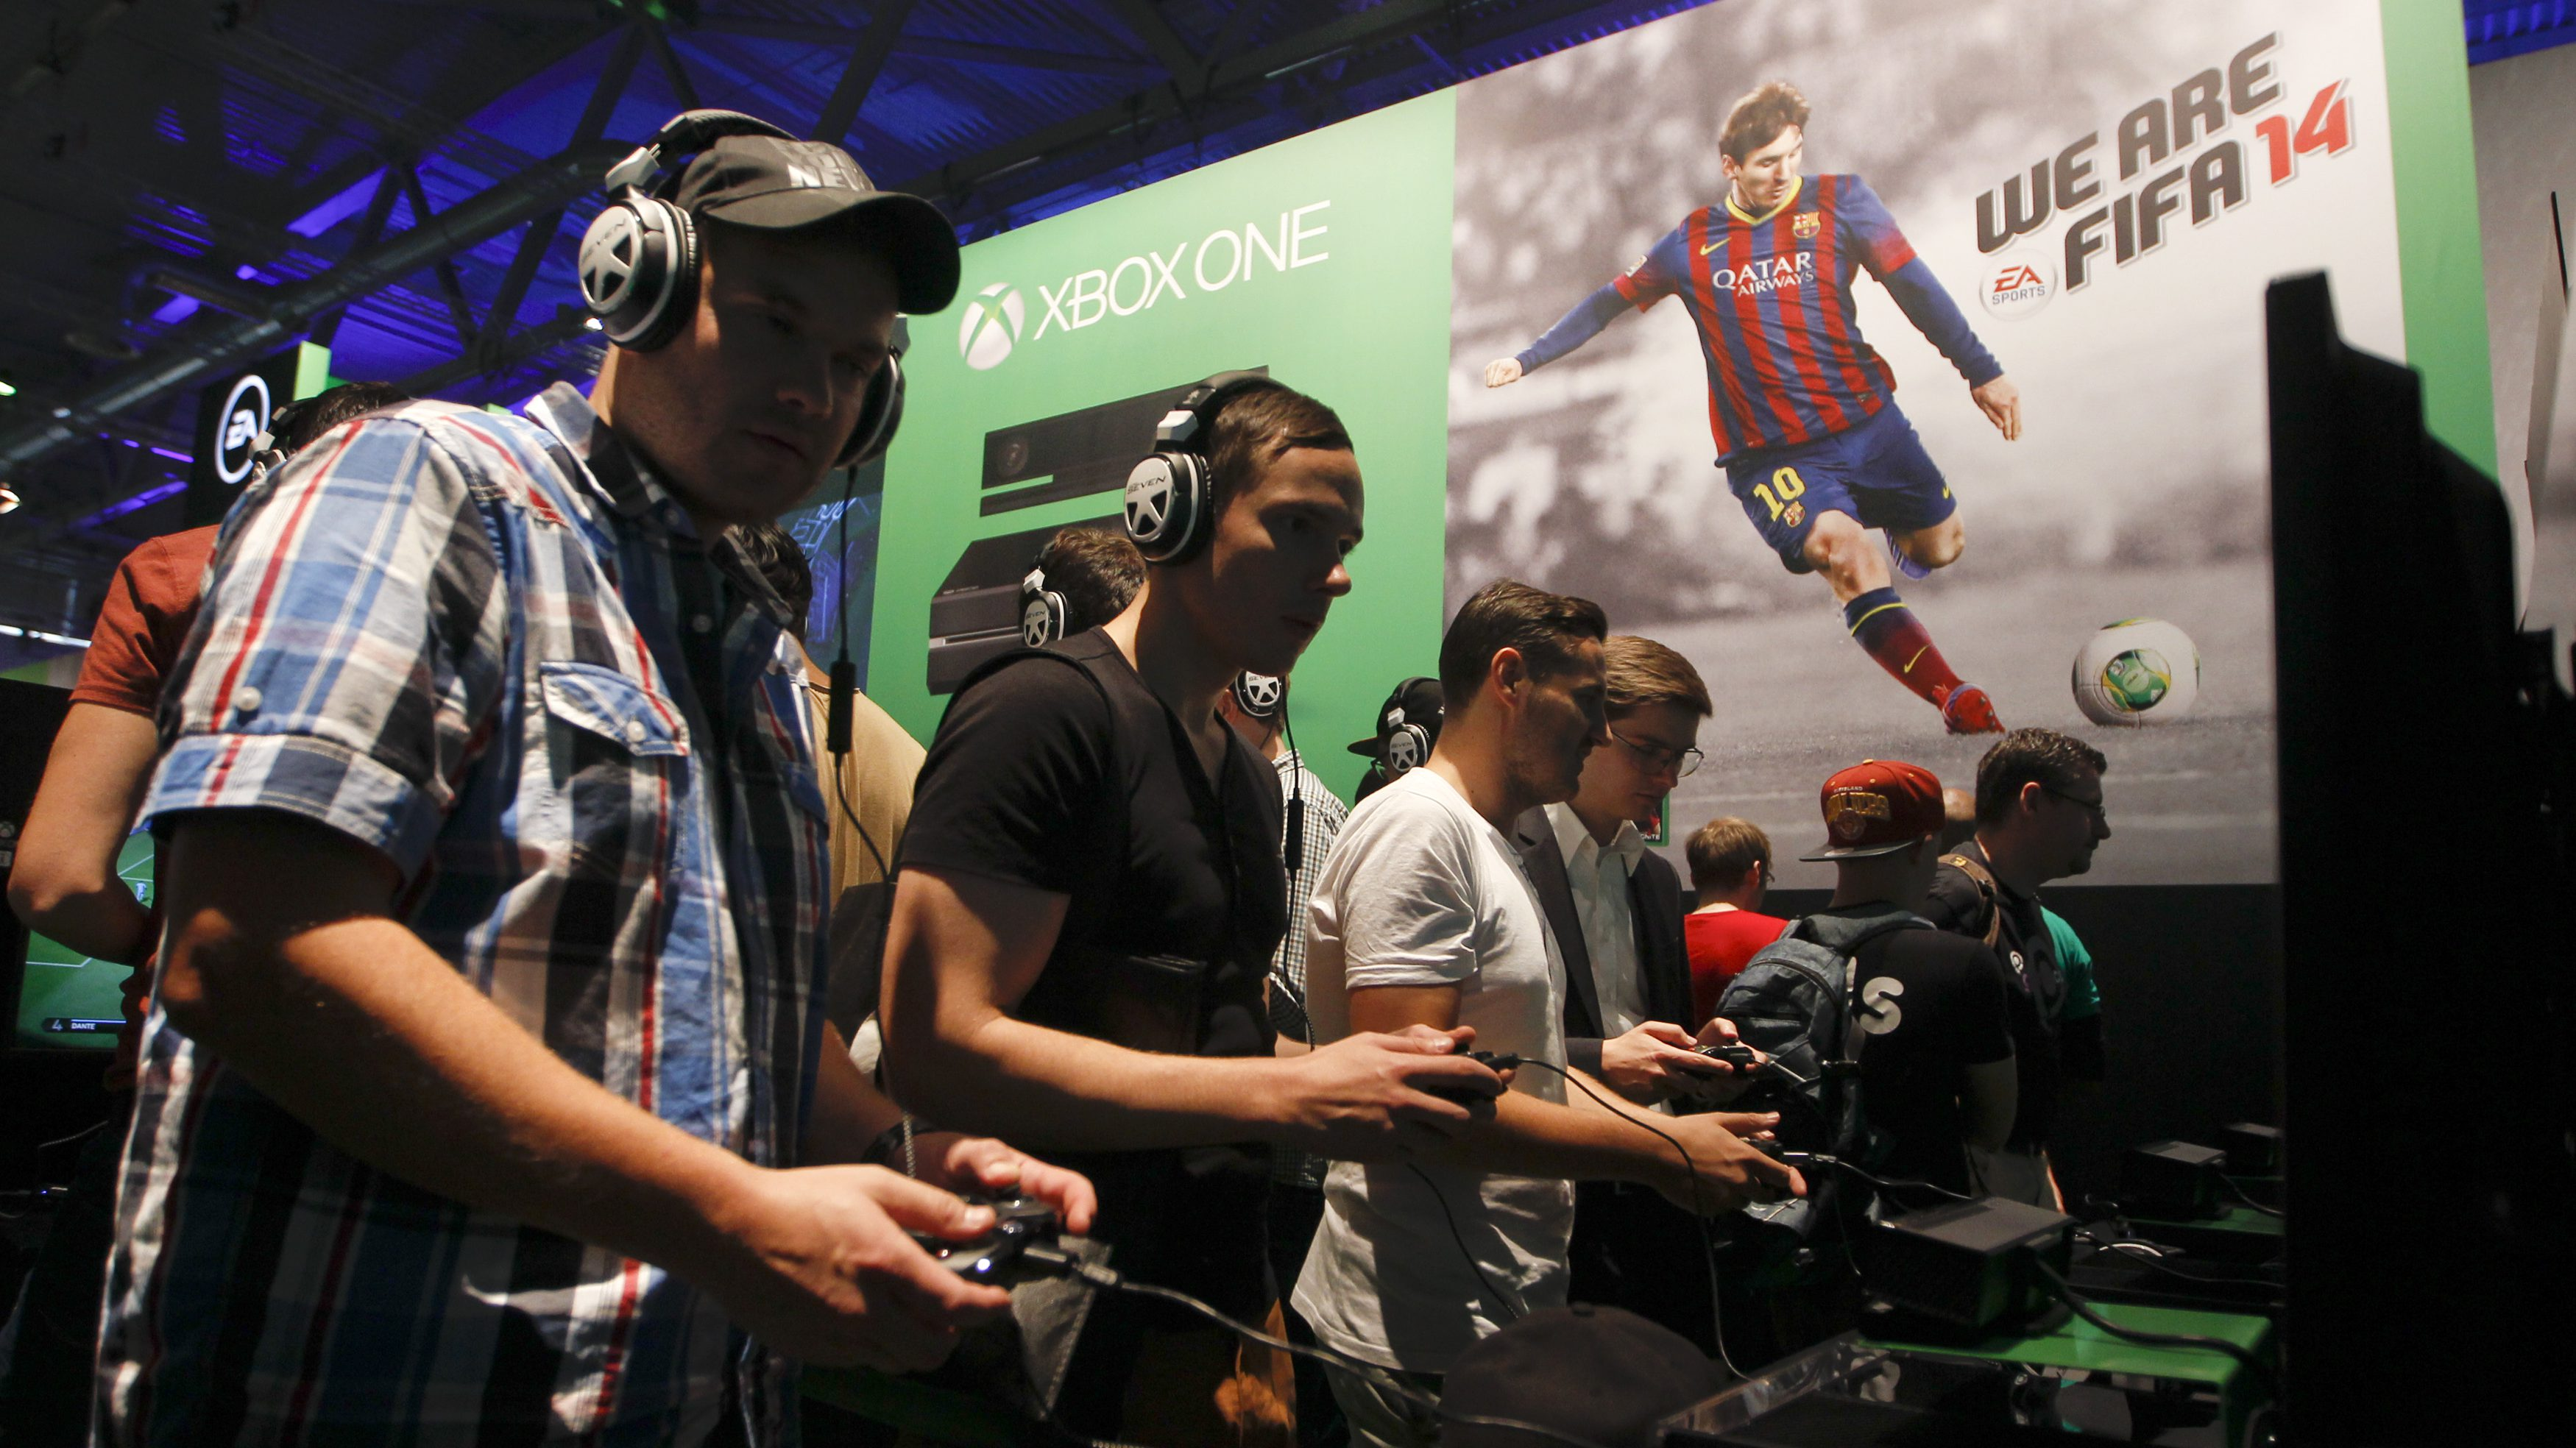 """Visitors play """"FIFA 14"""" with the Xbox One at the Microsoft Games exhibition stand during the Gamescom 2013 fair in Cologne"""